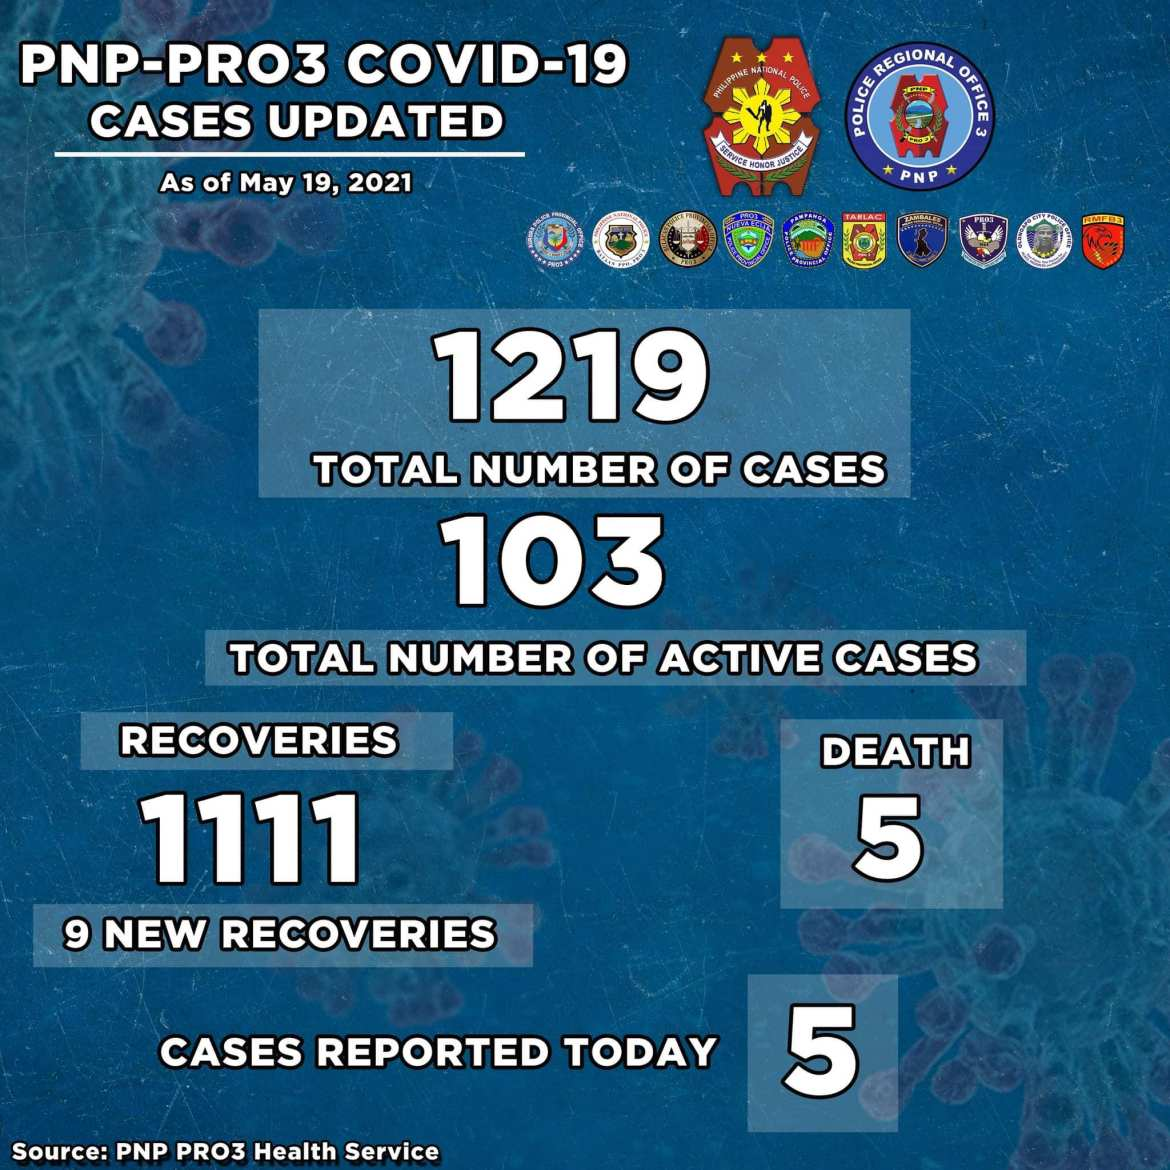 PNP RO3 registers 3 new Covid cases, 9 recoveries